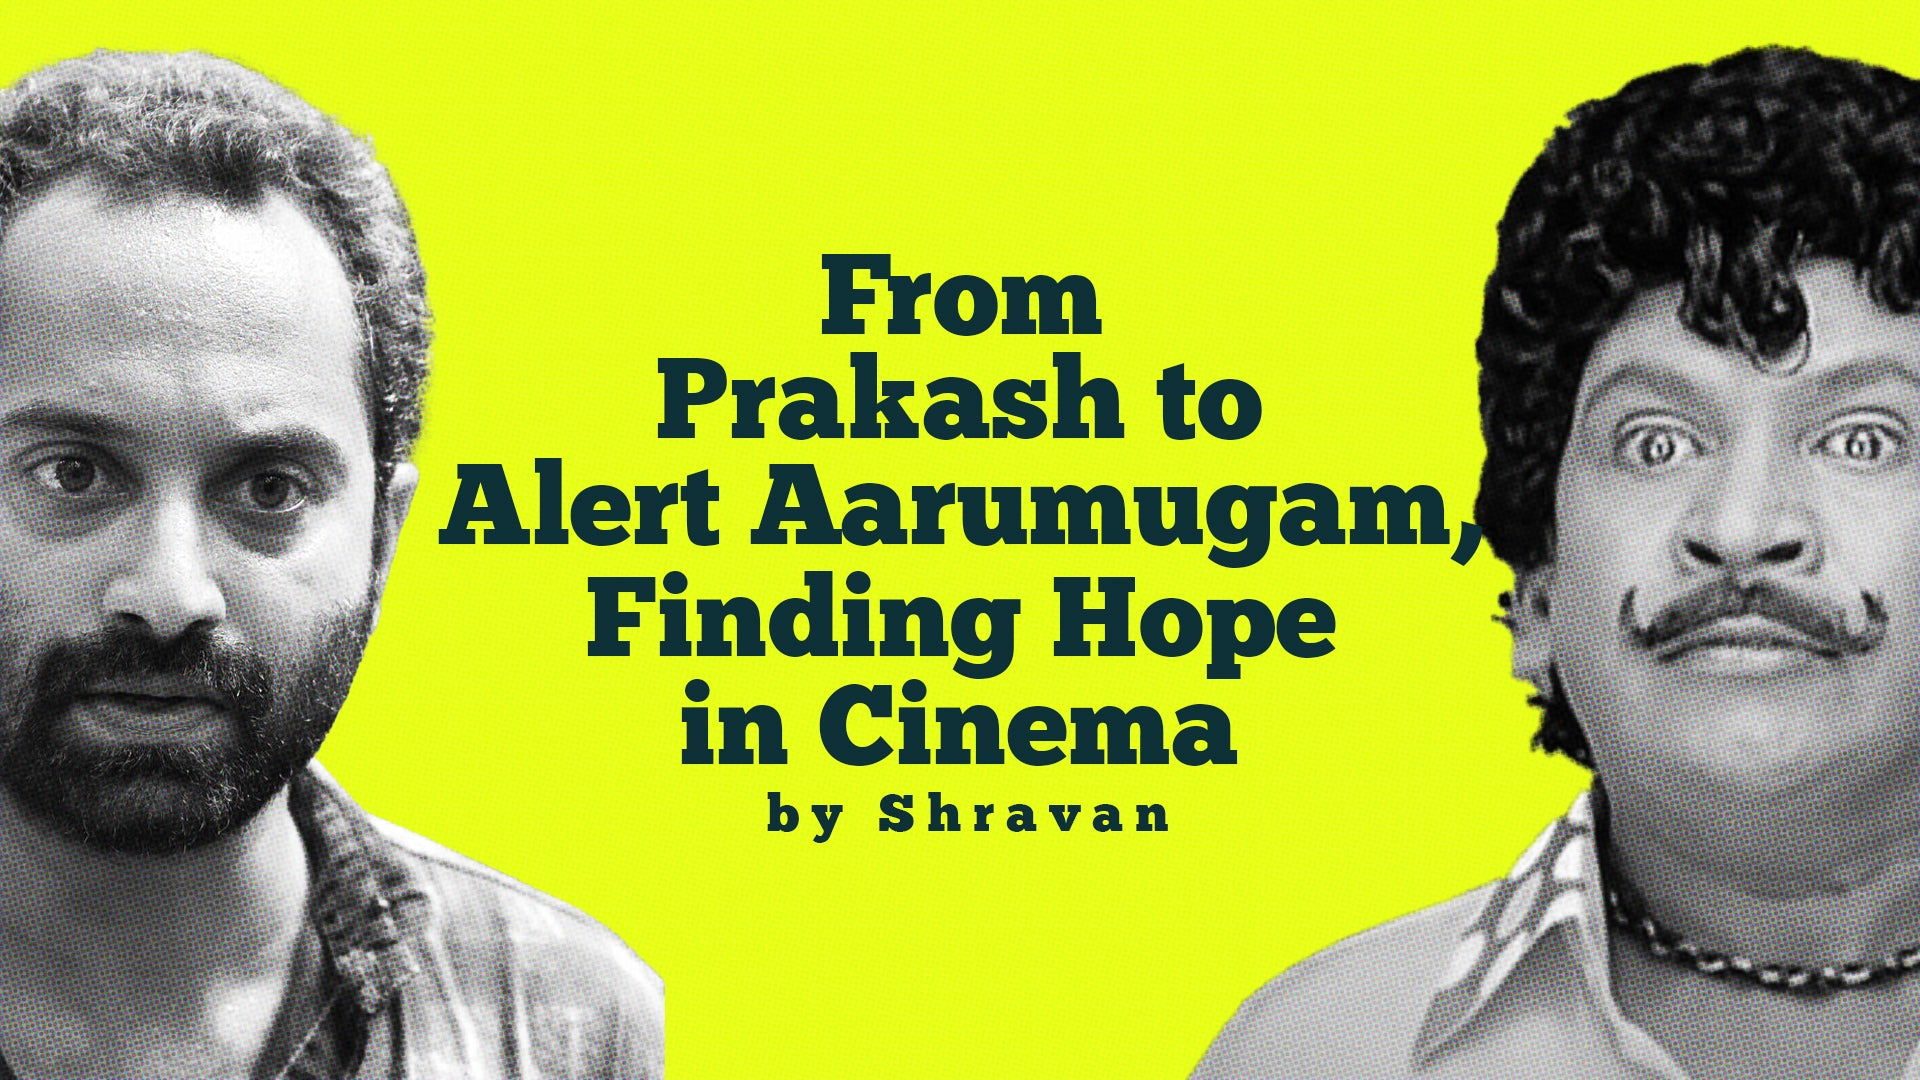 From Prakash to Alert Aarumugam, Finding hope in Cinema!